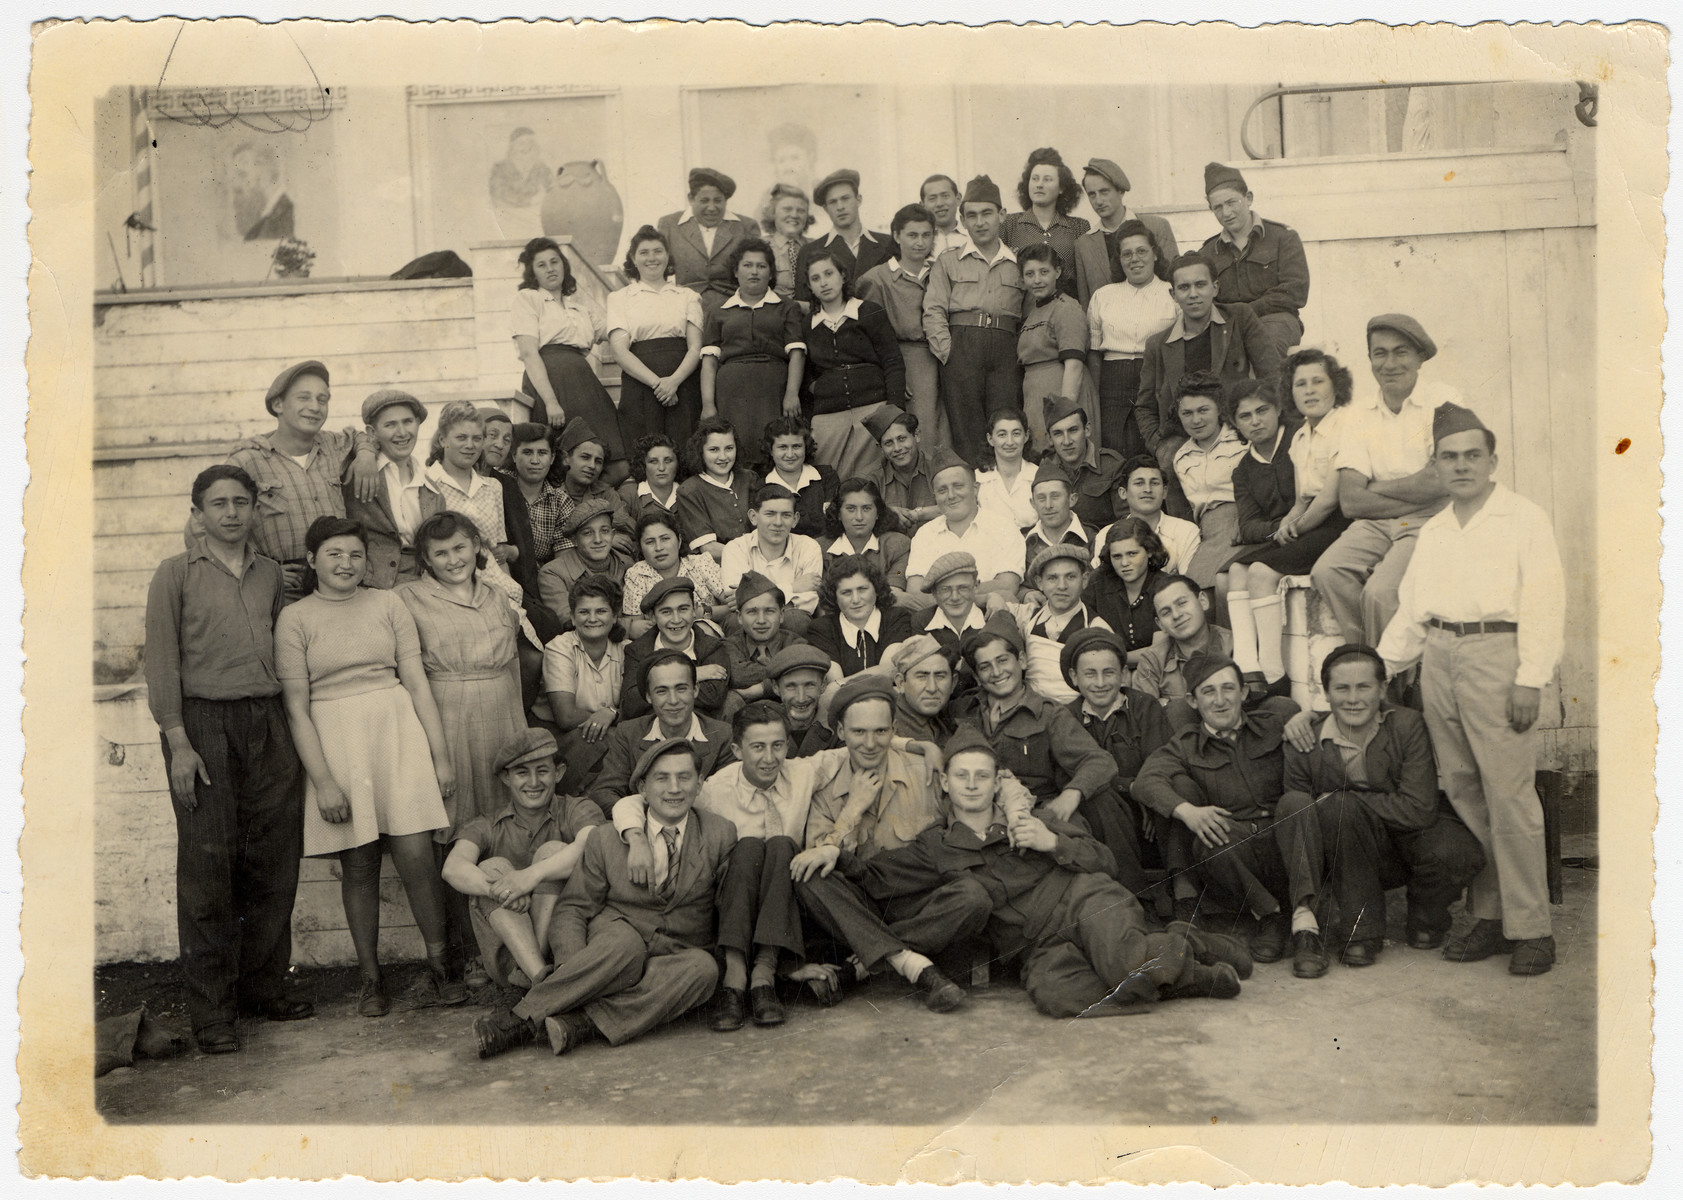 Group portrait of displaced persons in Kibbutz Mekor Baruch, a Poal Mizrachi fishing hachshara in Bacoli, Italy.  Among those pictured are David Hirshkoviz, Yomi Feld, Meir Shtasel, Mordechai Feldman, Reuven Yoto, Chaya Weiss, Tzipora Weiss, Ben Zion Gasner,and Moshe Berger.